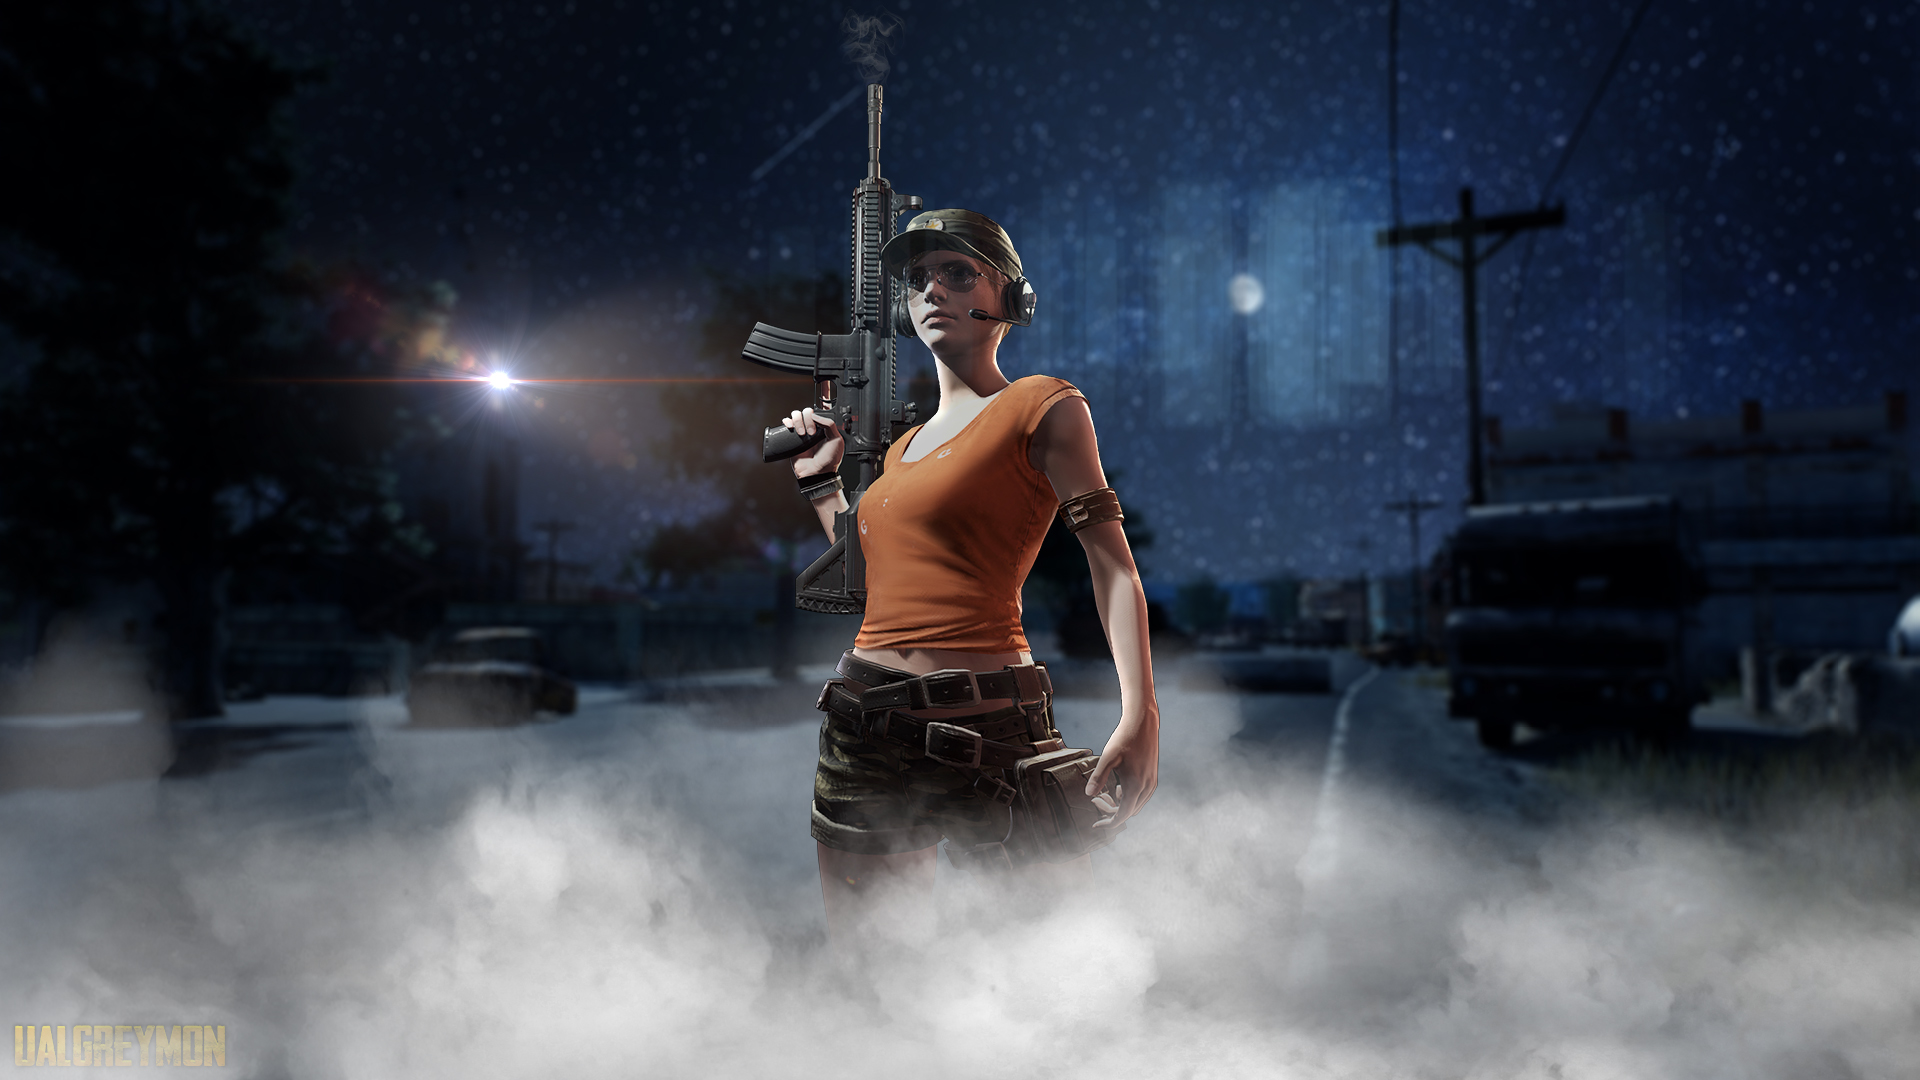 Pubg Wallpaper 1920x1080: Pubg Night, HD Games, 4k Wallpapers, Images, Backgrounds